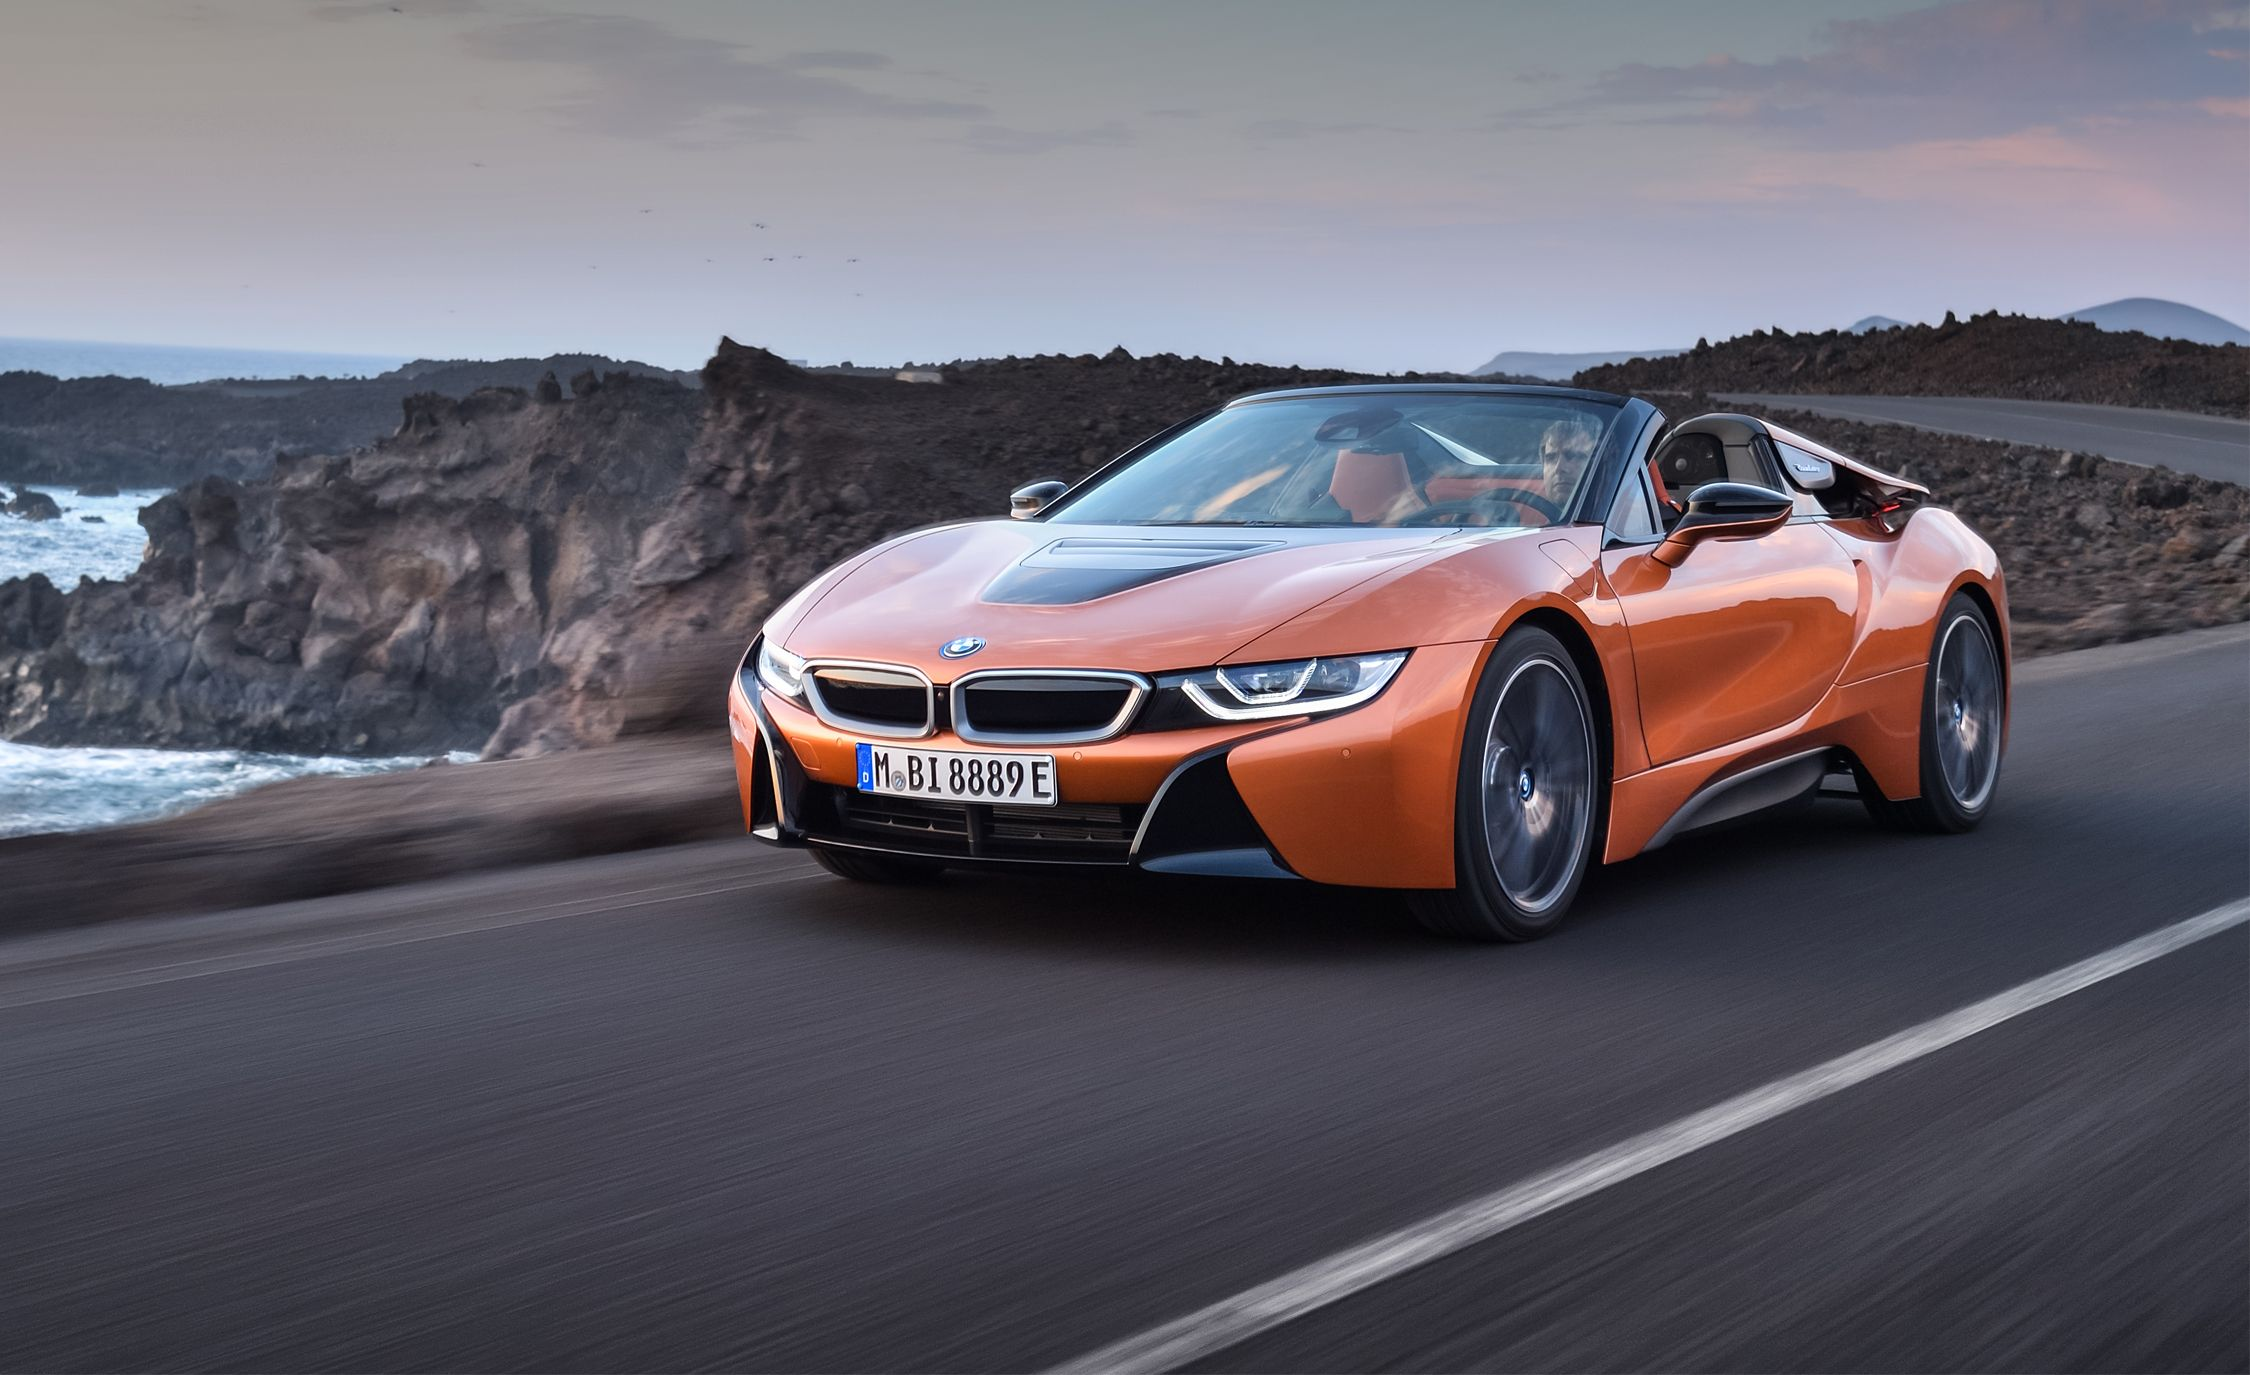 2019 Bmw I8 Roadster First Drive Cloth Roof No Back Seat More Money Review Car And Driver